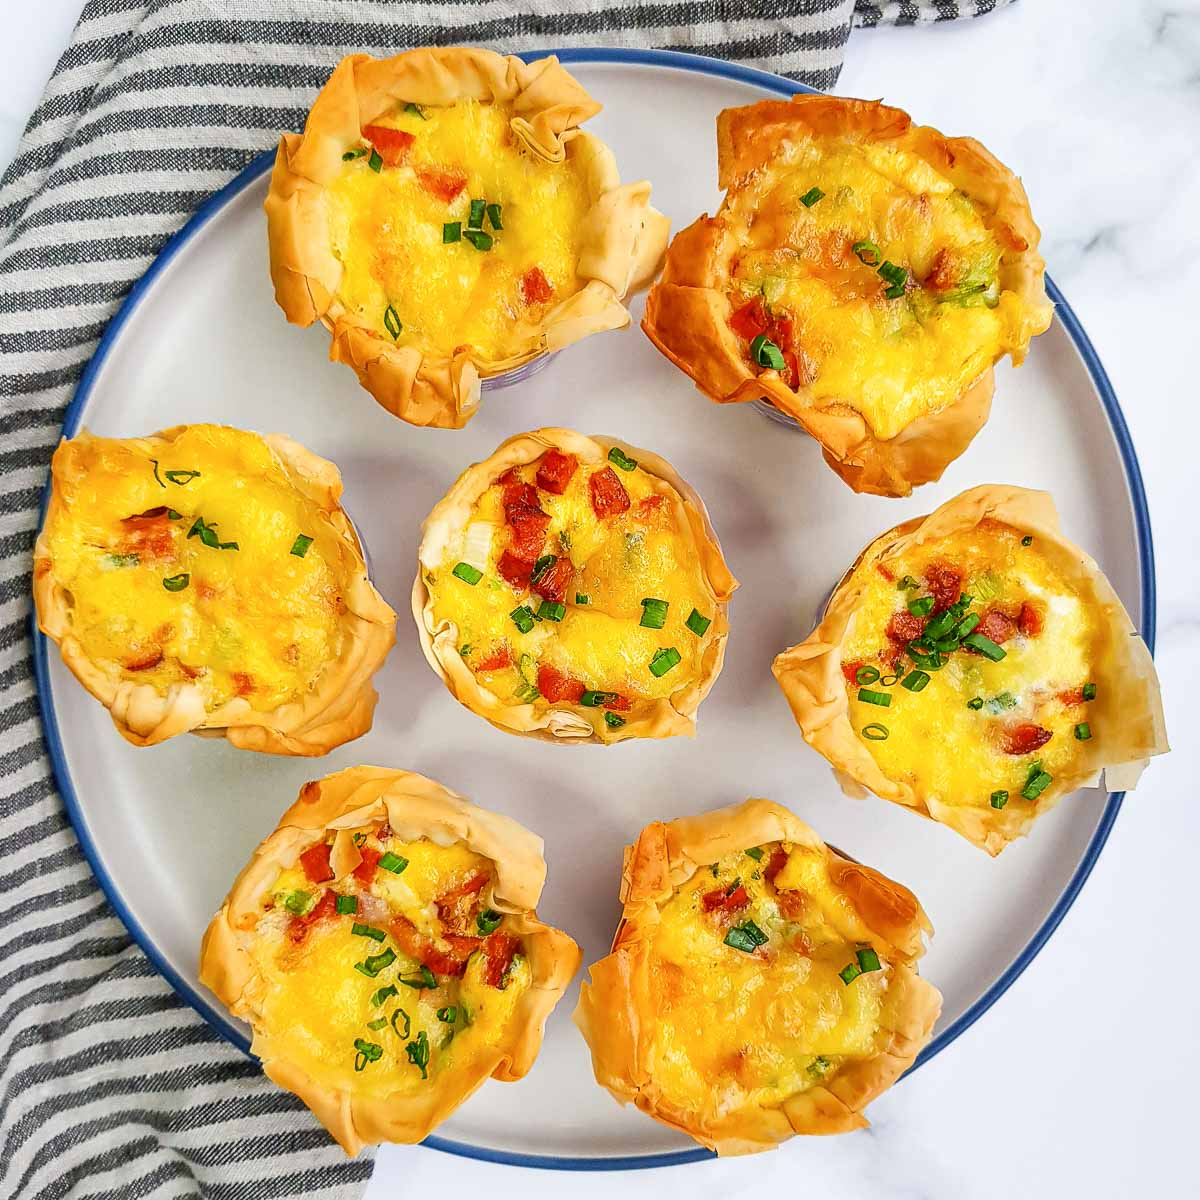 Mini phyllo quiches with sausage on a plate.